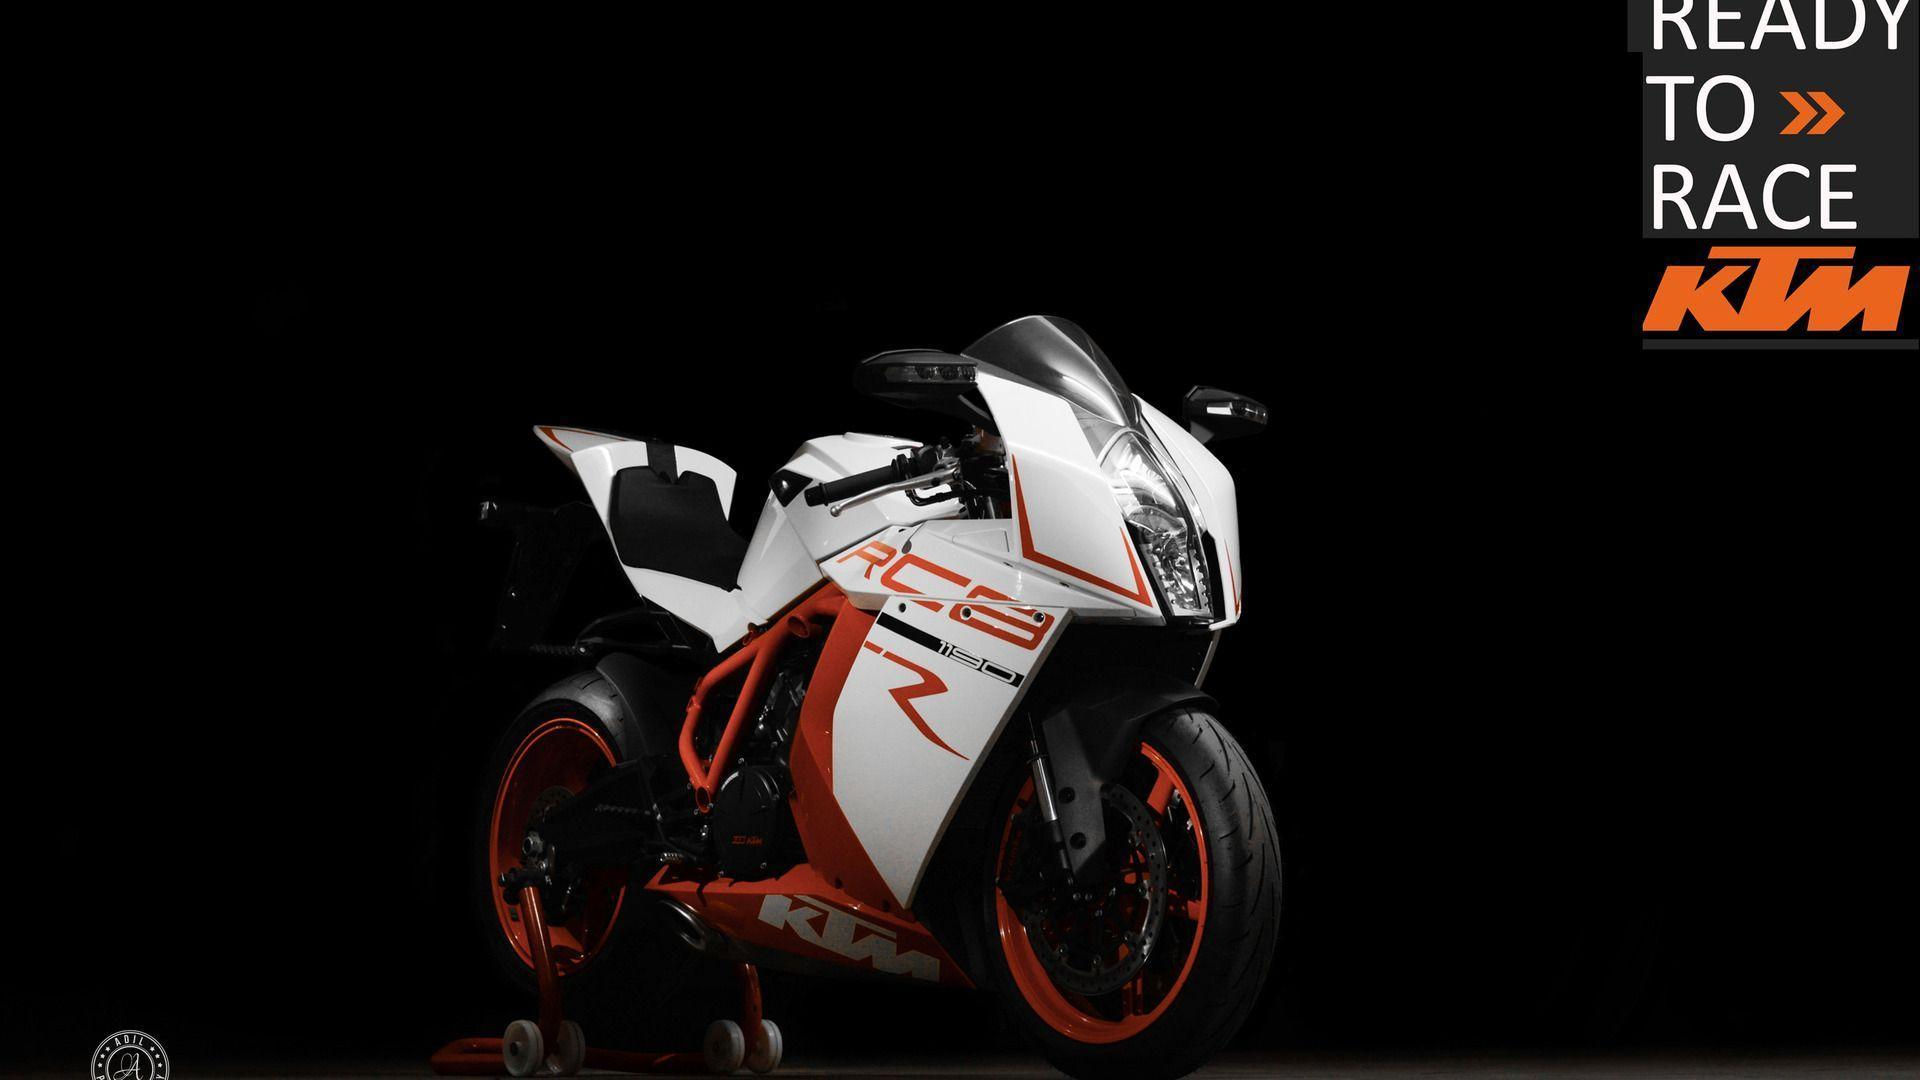 wallpapers ktm rc8 - photo #20